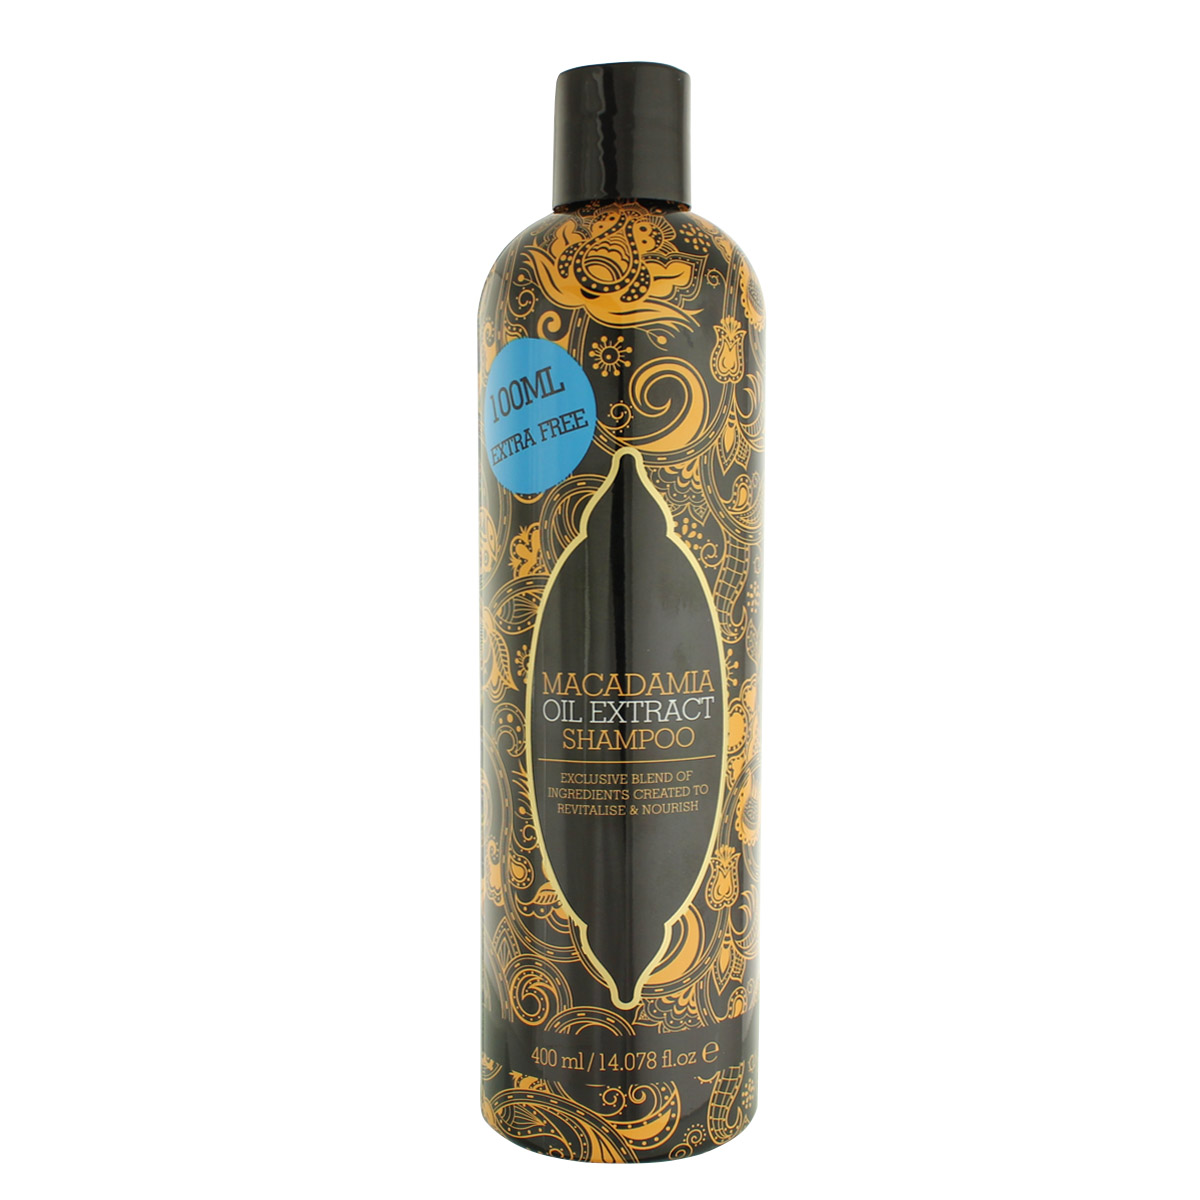 Macadamia Oil Extract Shampoo 400 ml 82256